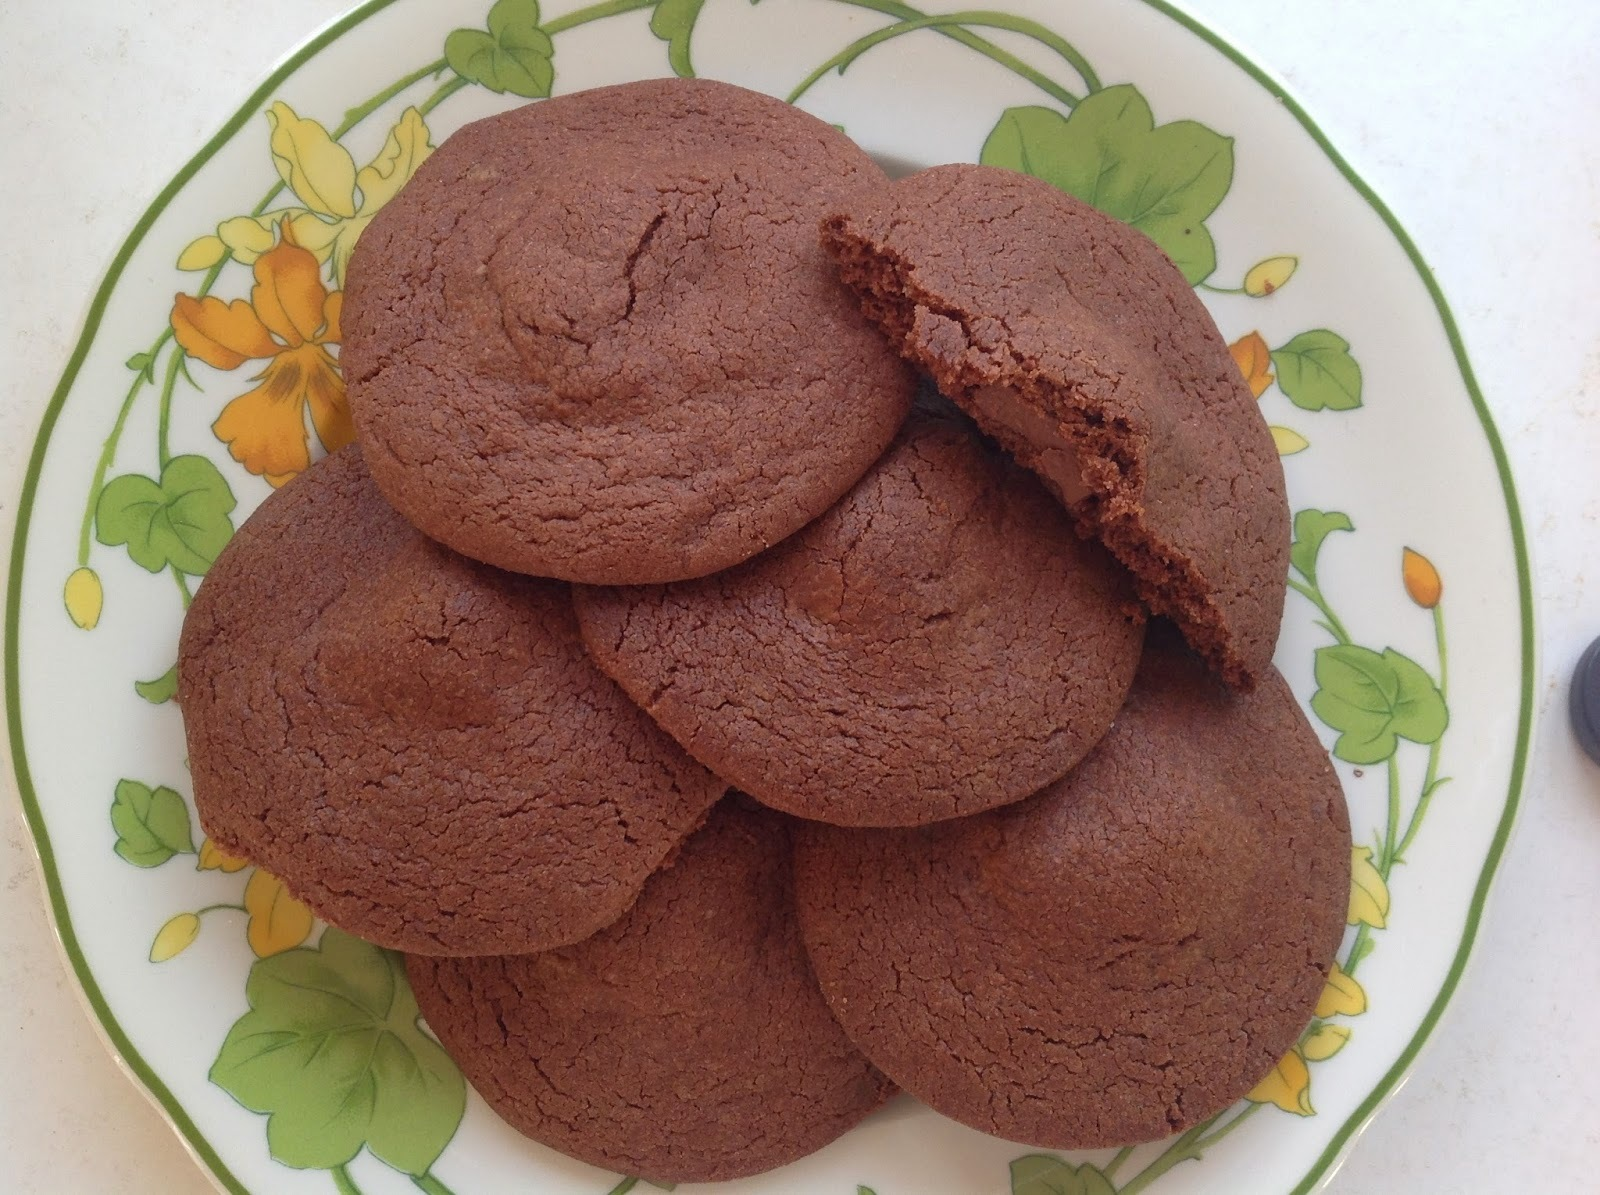 Jamie Oliver's Chocolate Biscuits with Soft Chocolate Centres